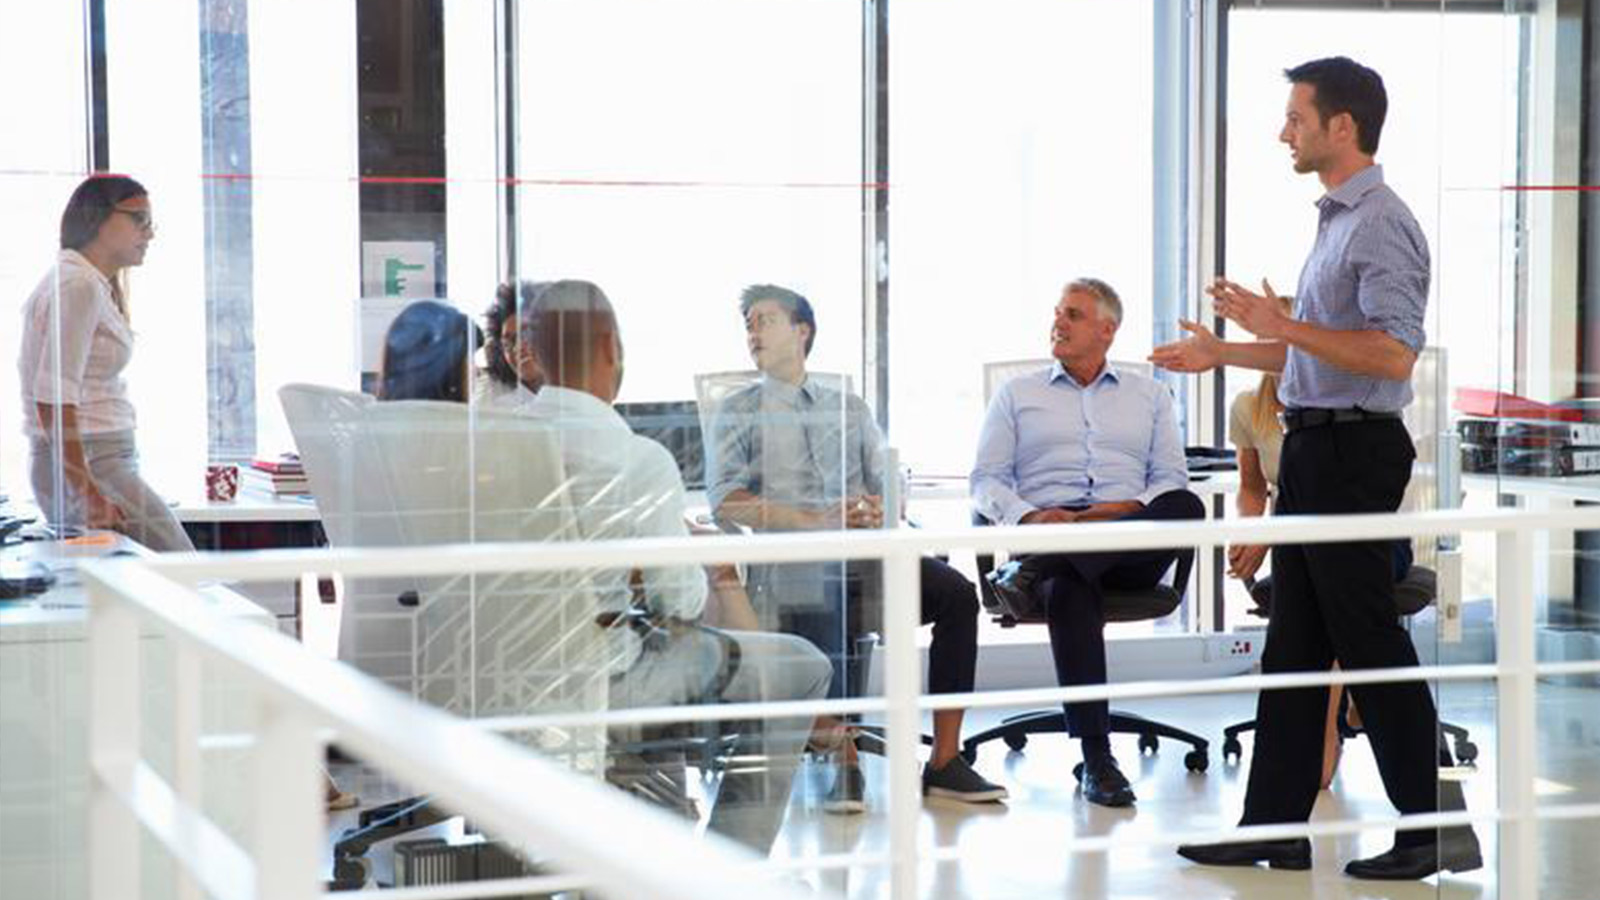 Group of business people in office discussing ideas.